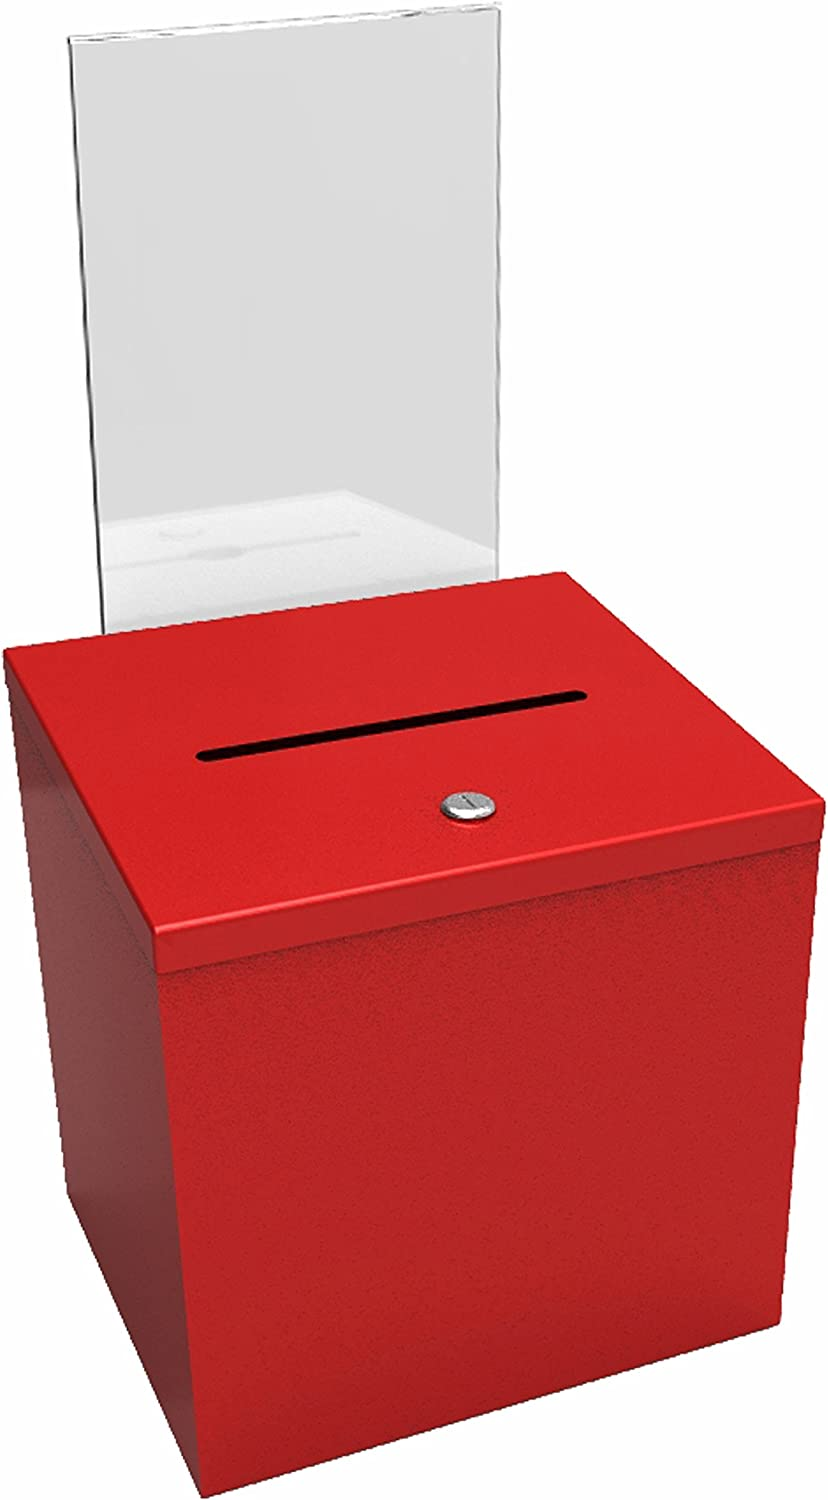 FixtureDisplays RED Metal Donation Box Suggestion Charity Key Drop Fund Raising Sign Holder 11573RED